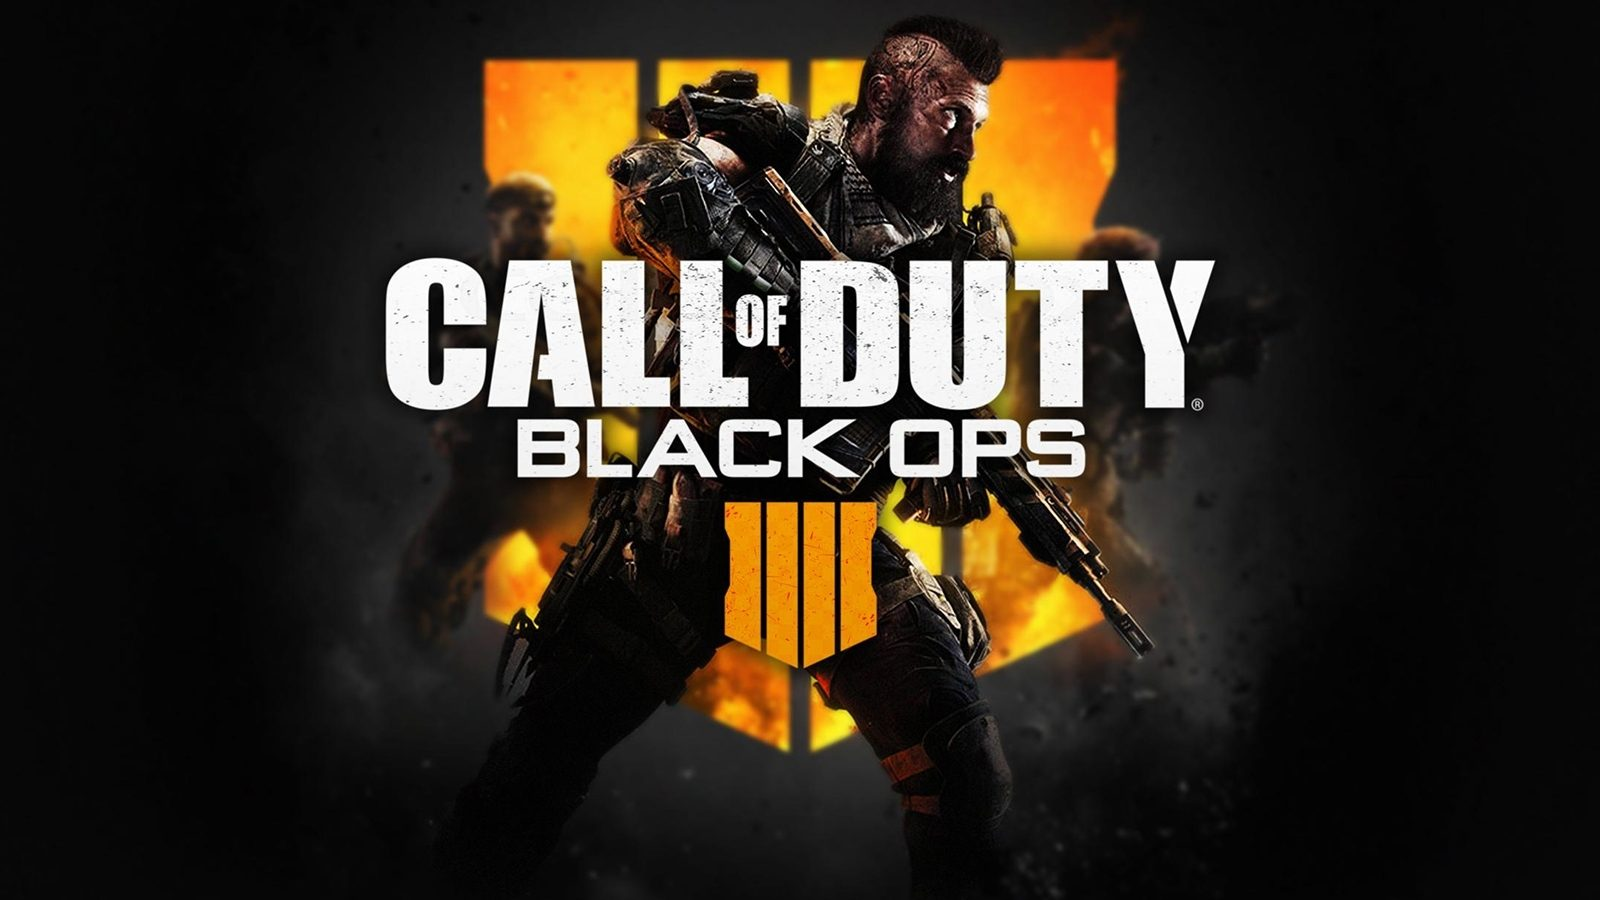 Black ops 4 and blackout ps4 release